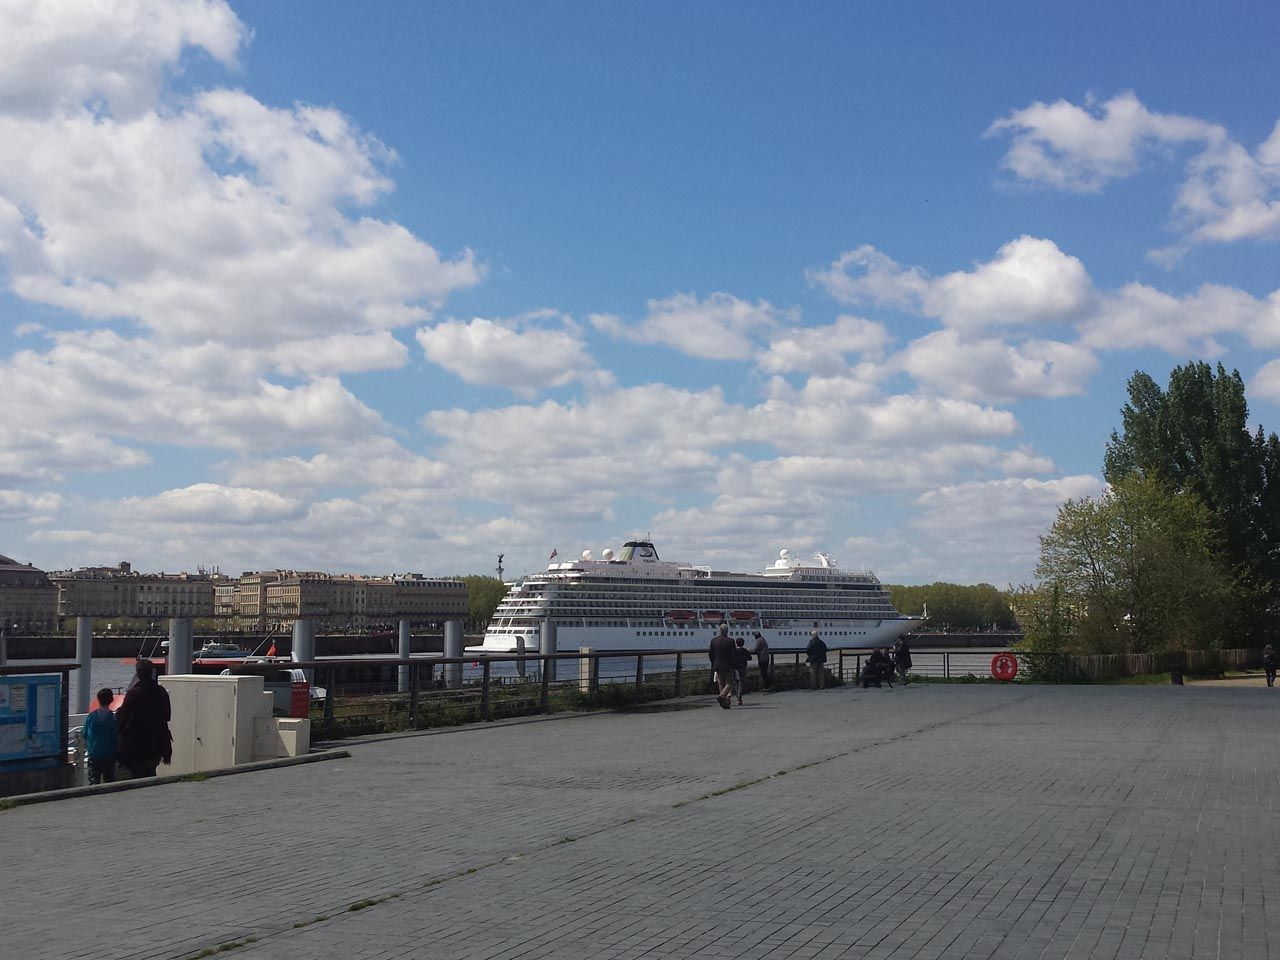 2016-04-24-Viking-Star-docked-In-Bordeaux